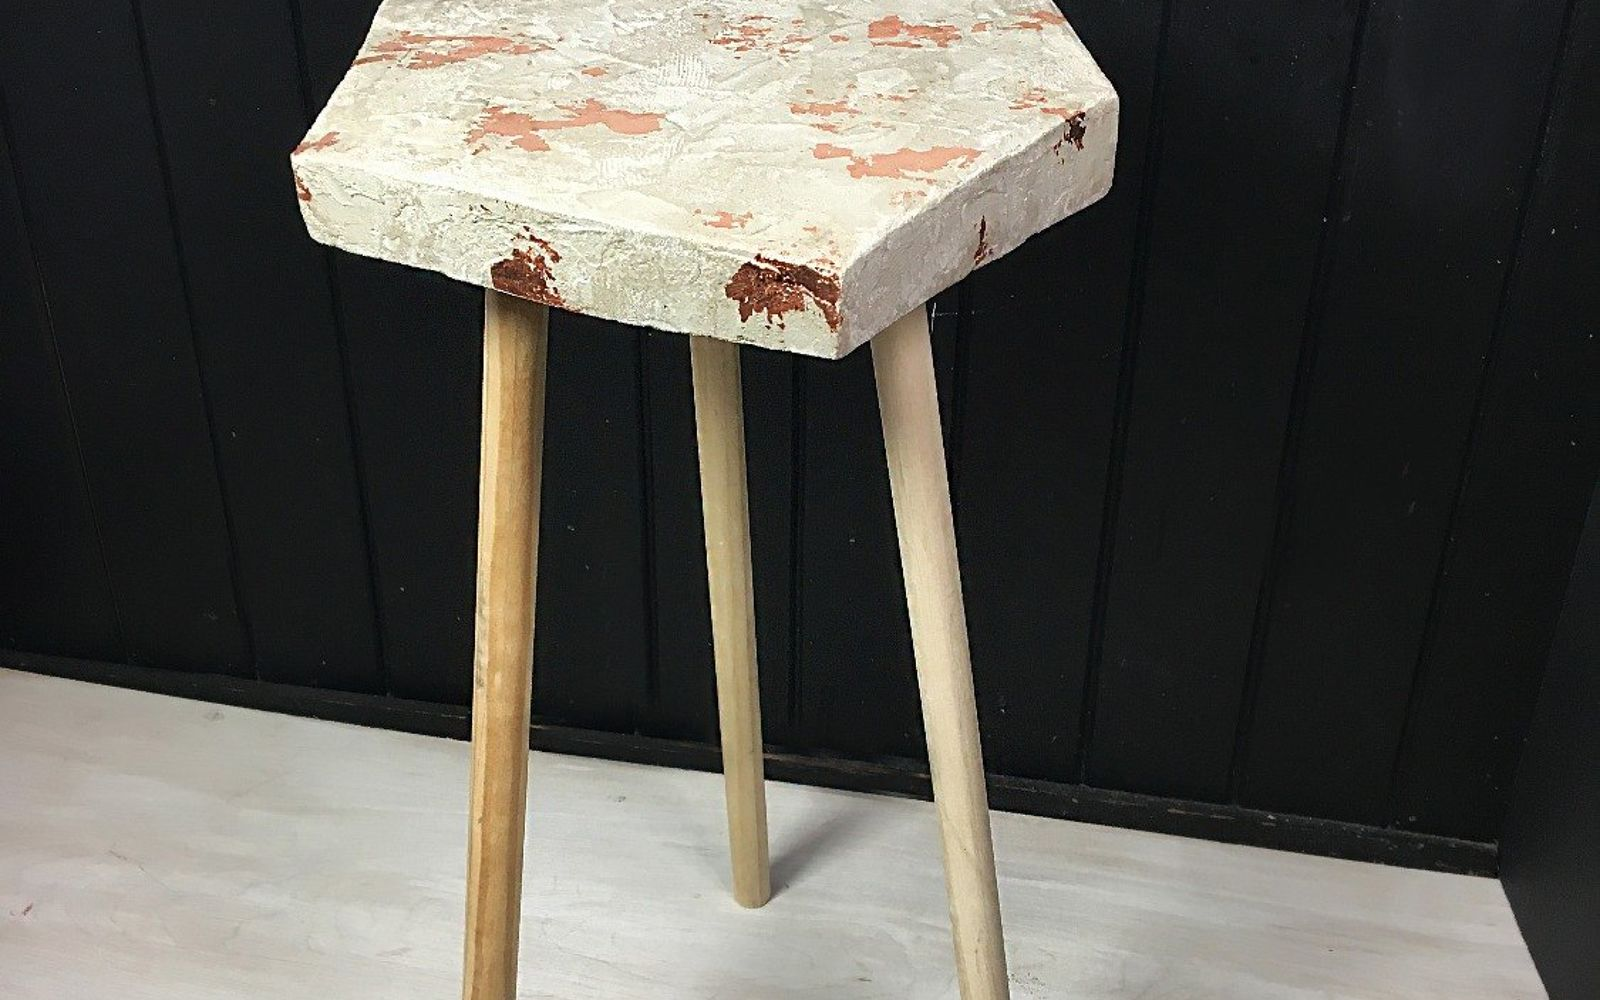 s 10 clever ways to use concrete for anything, Mix Up Cement For A Side Table